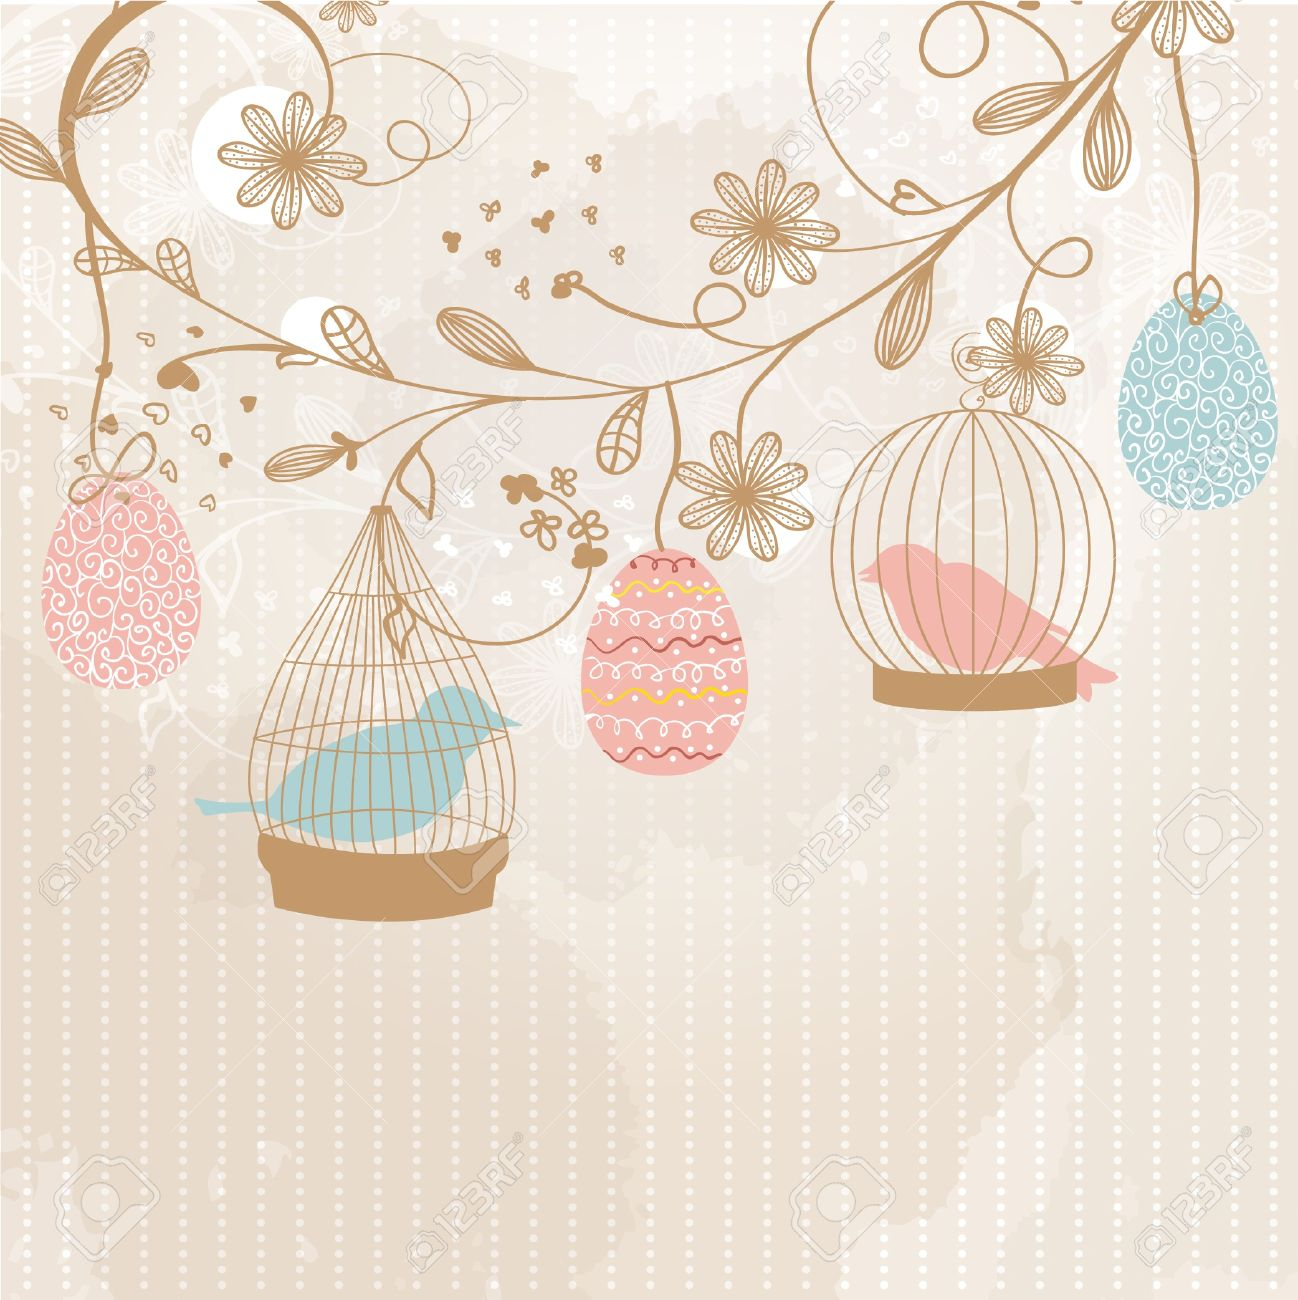 Easter card with cute birds in the cages and patterned easter eggs Stock Vector - 12906407